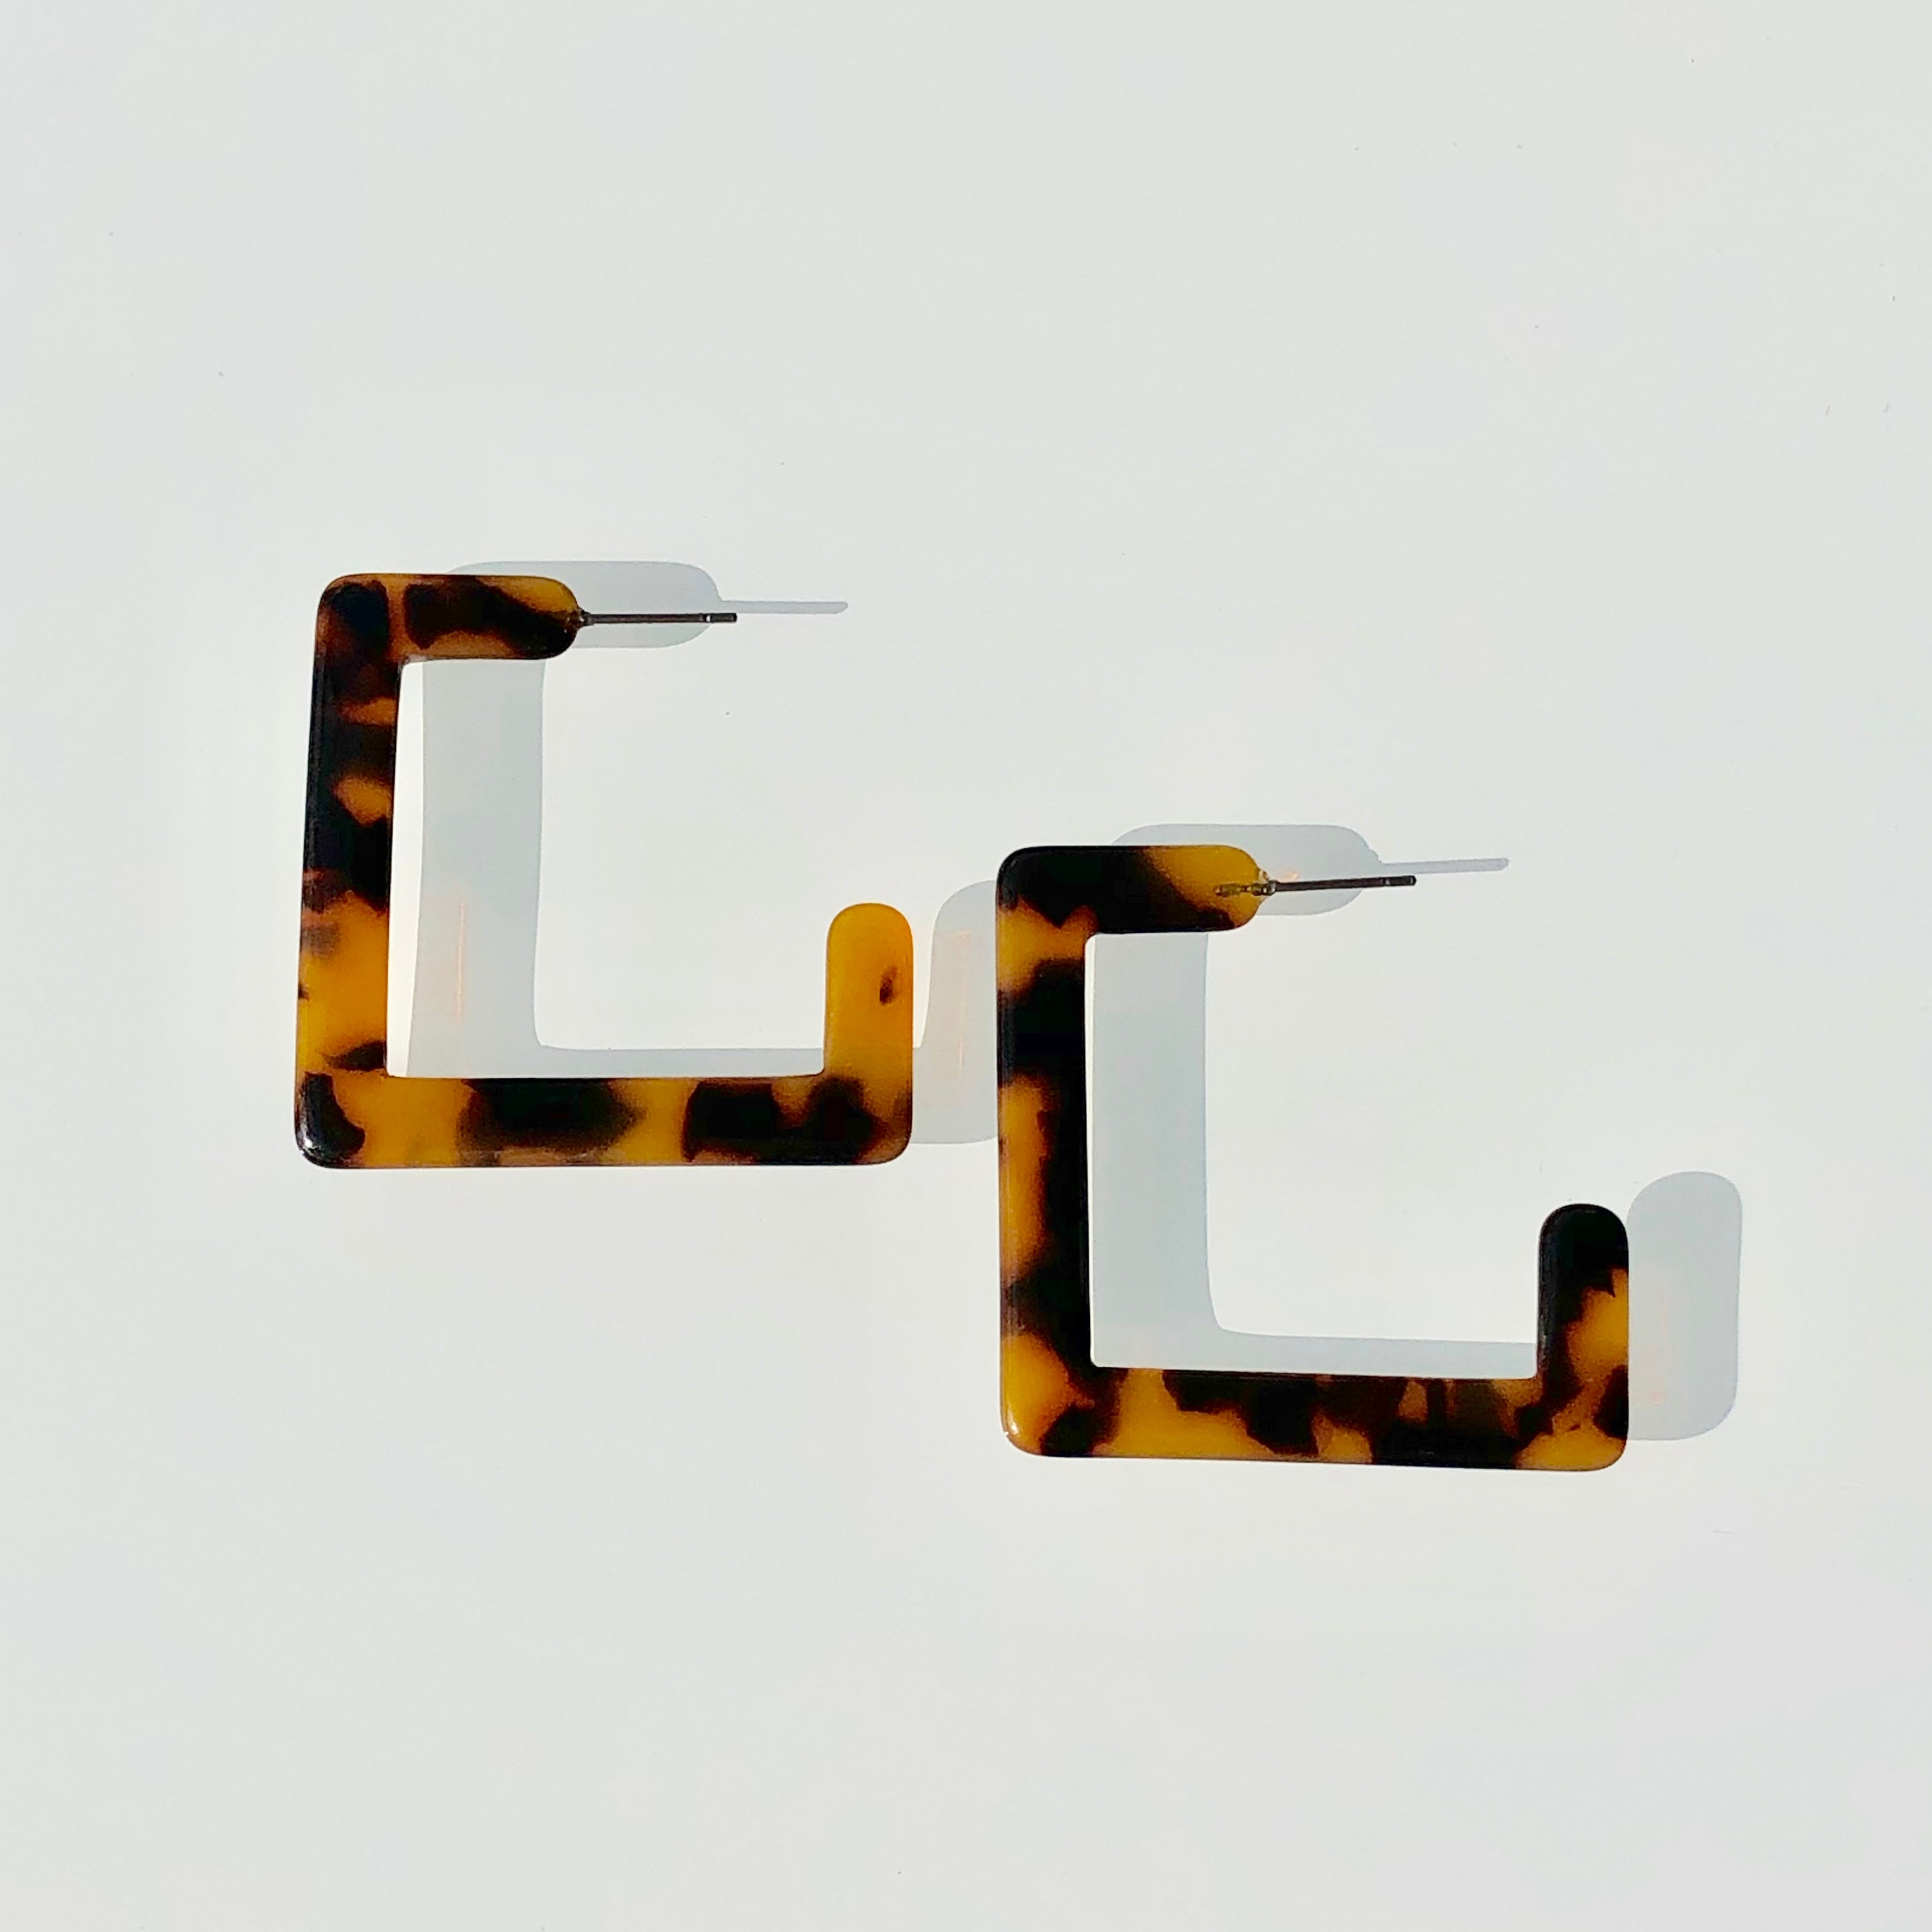 colorful, statement earrings, hoops, drop earrings, necklace, jewelry, blogger, influence, accessories, tortoise shell, acrylic hoops, square hoops, trendy, stylish, minimal